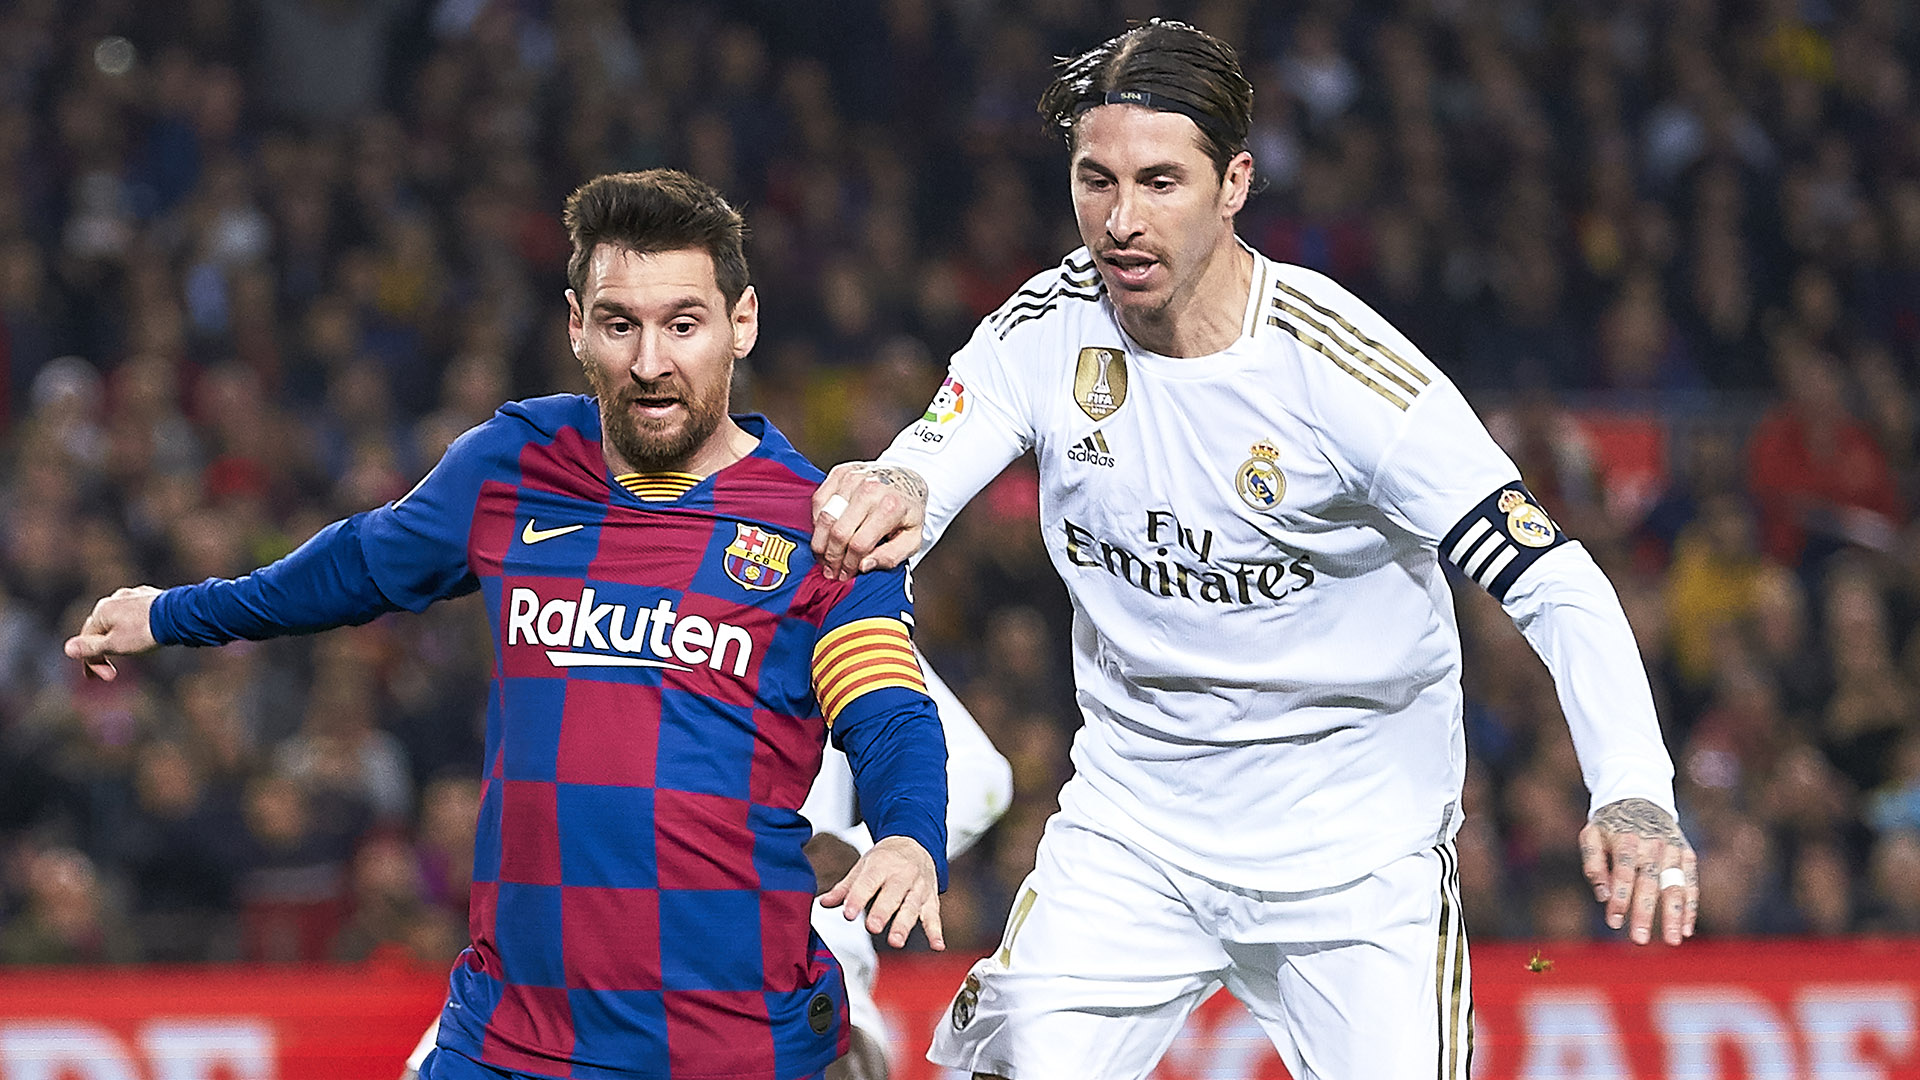 Ramos reveals what he really thinks about Messi & how Madrid can defeat Barcelona in El Clasico - Goal.com